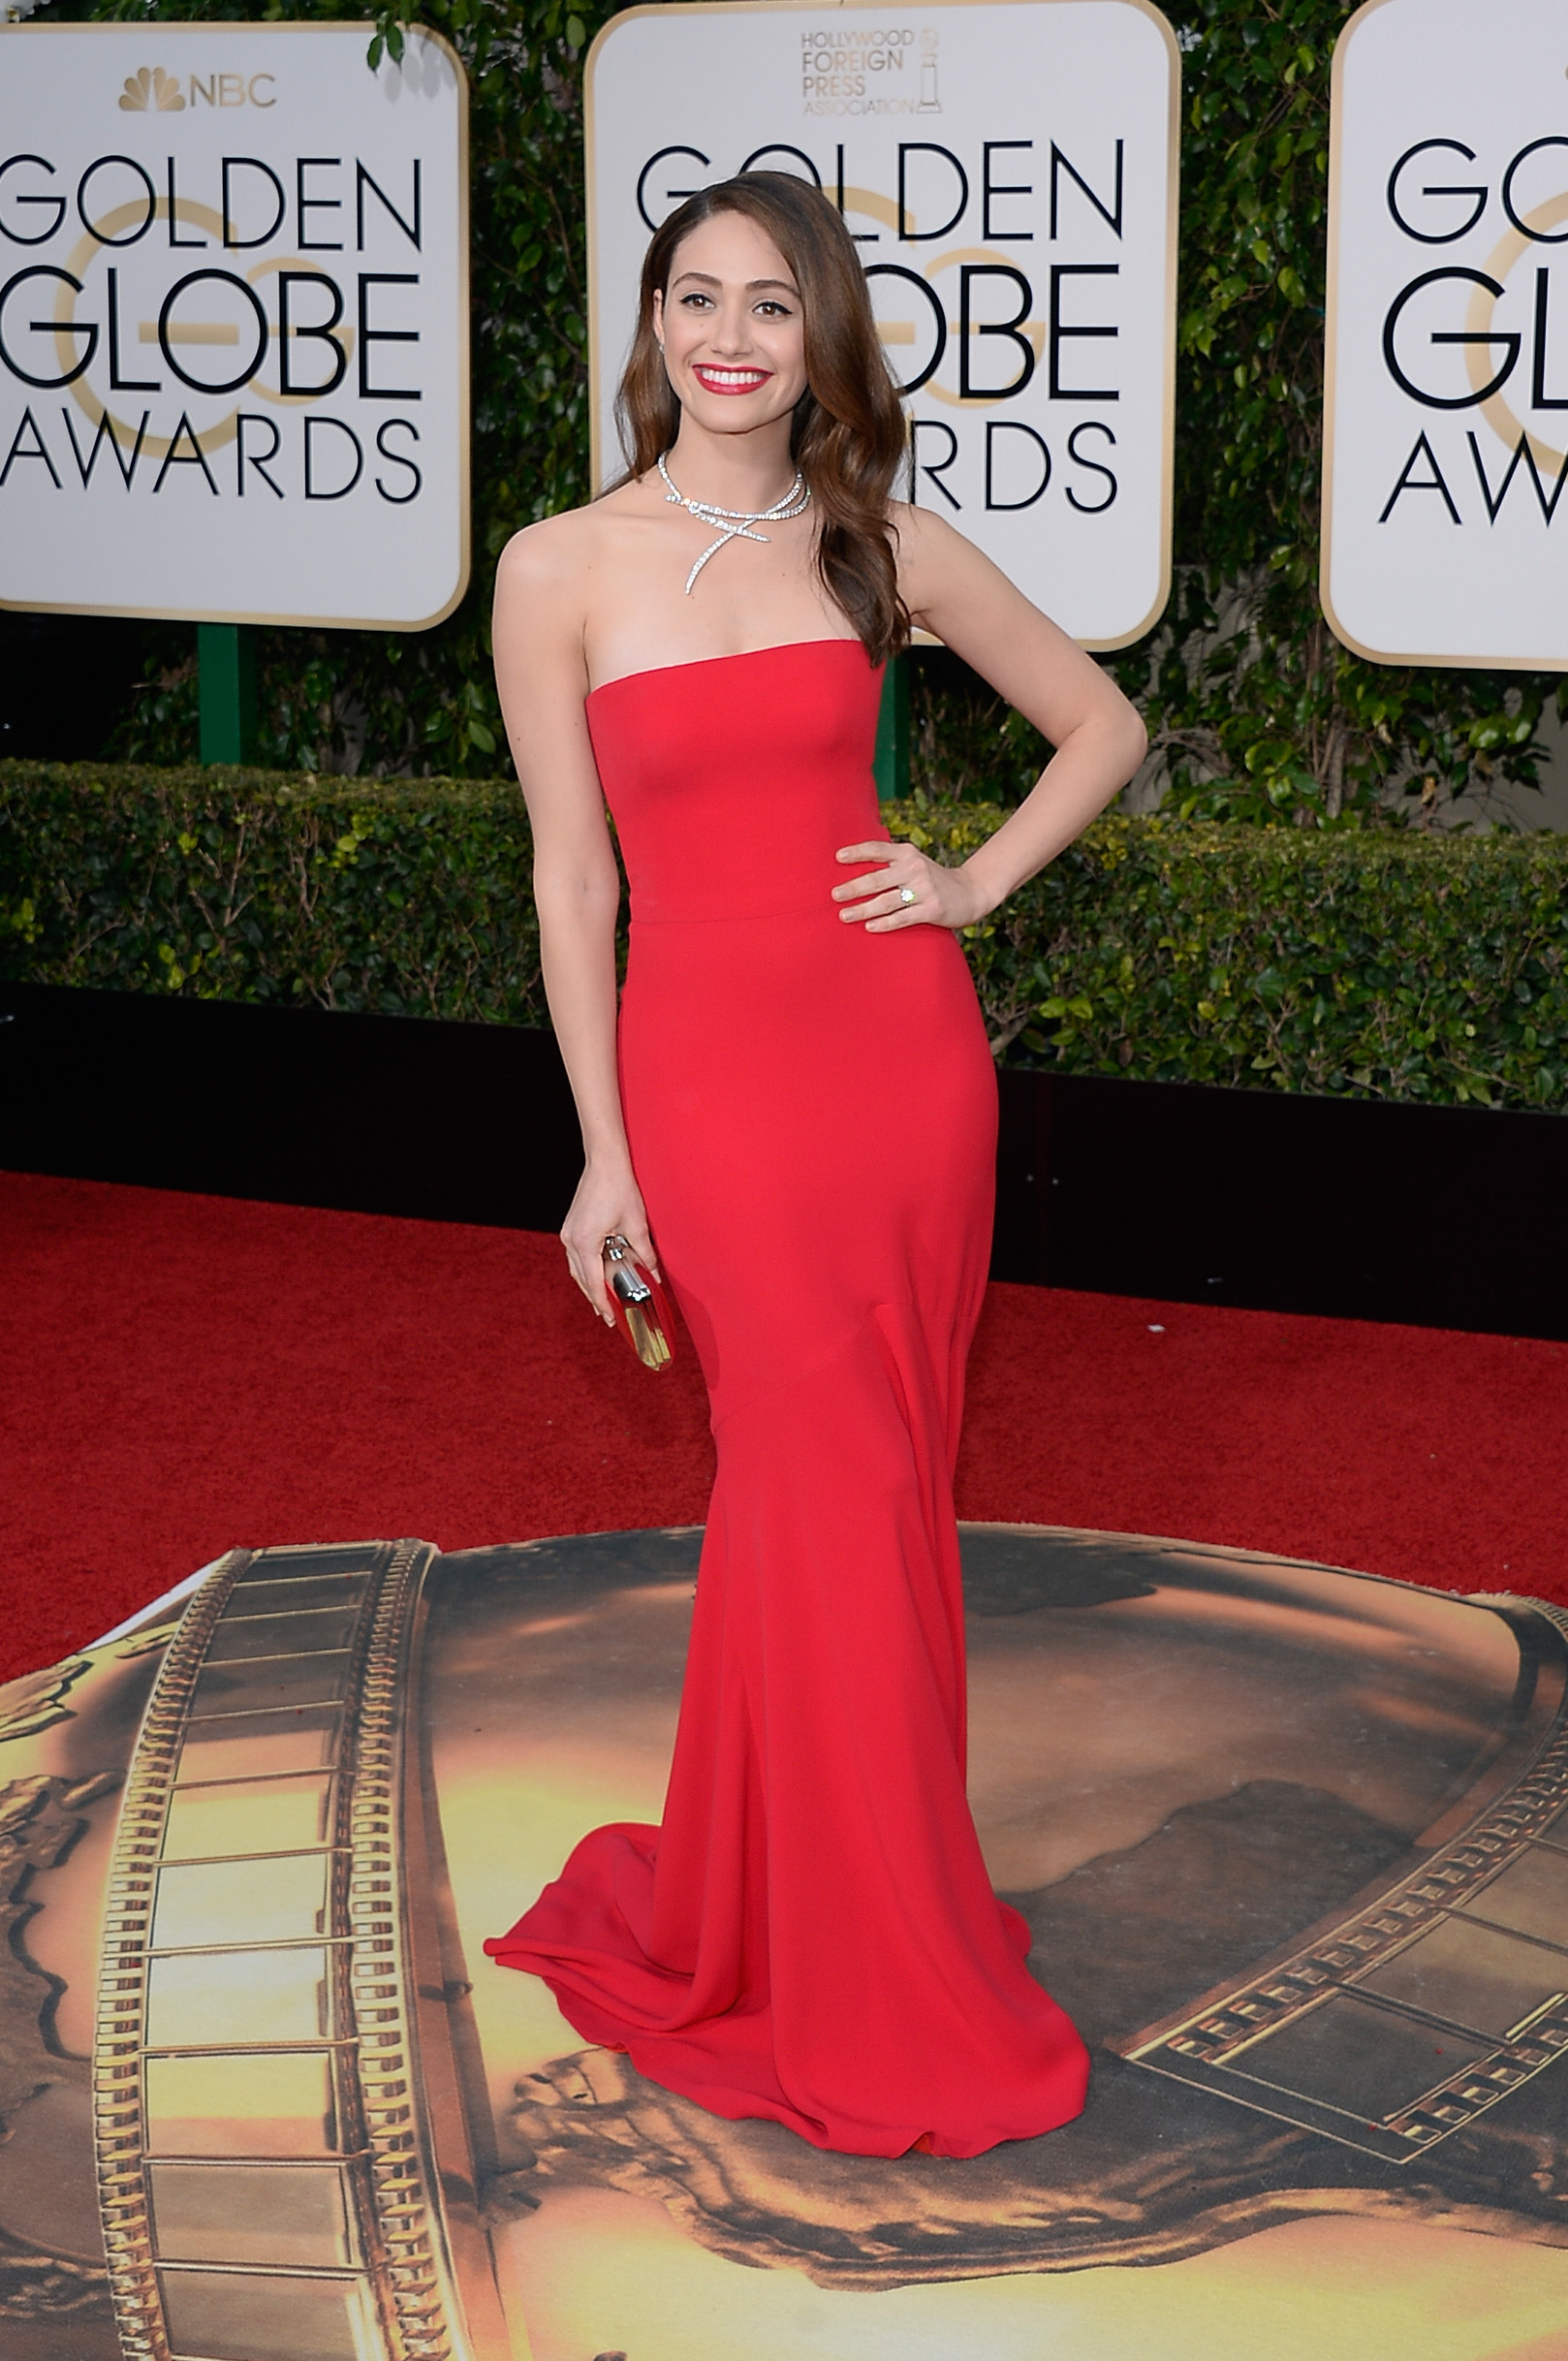 Emmy Rossum arrives to the 73rd Annual Golden Globe Awards on Jan. 10, 2016 in Beverly Hills.